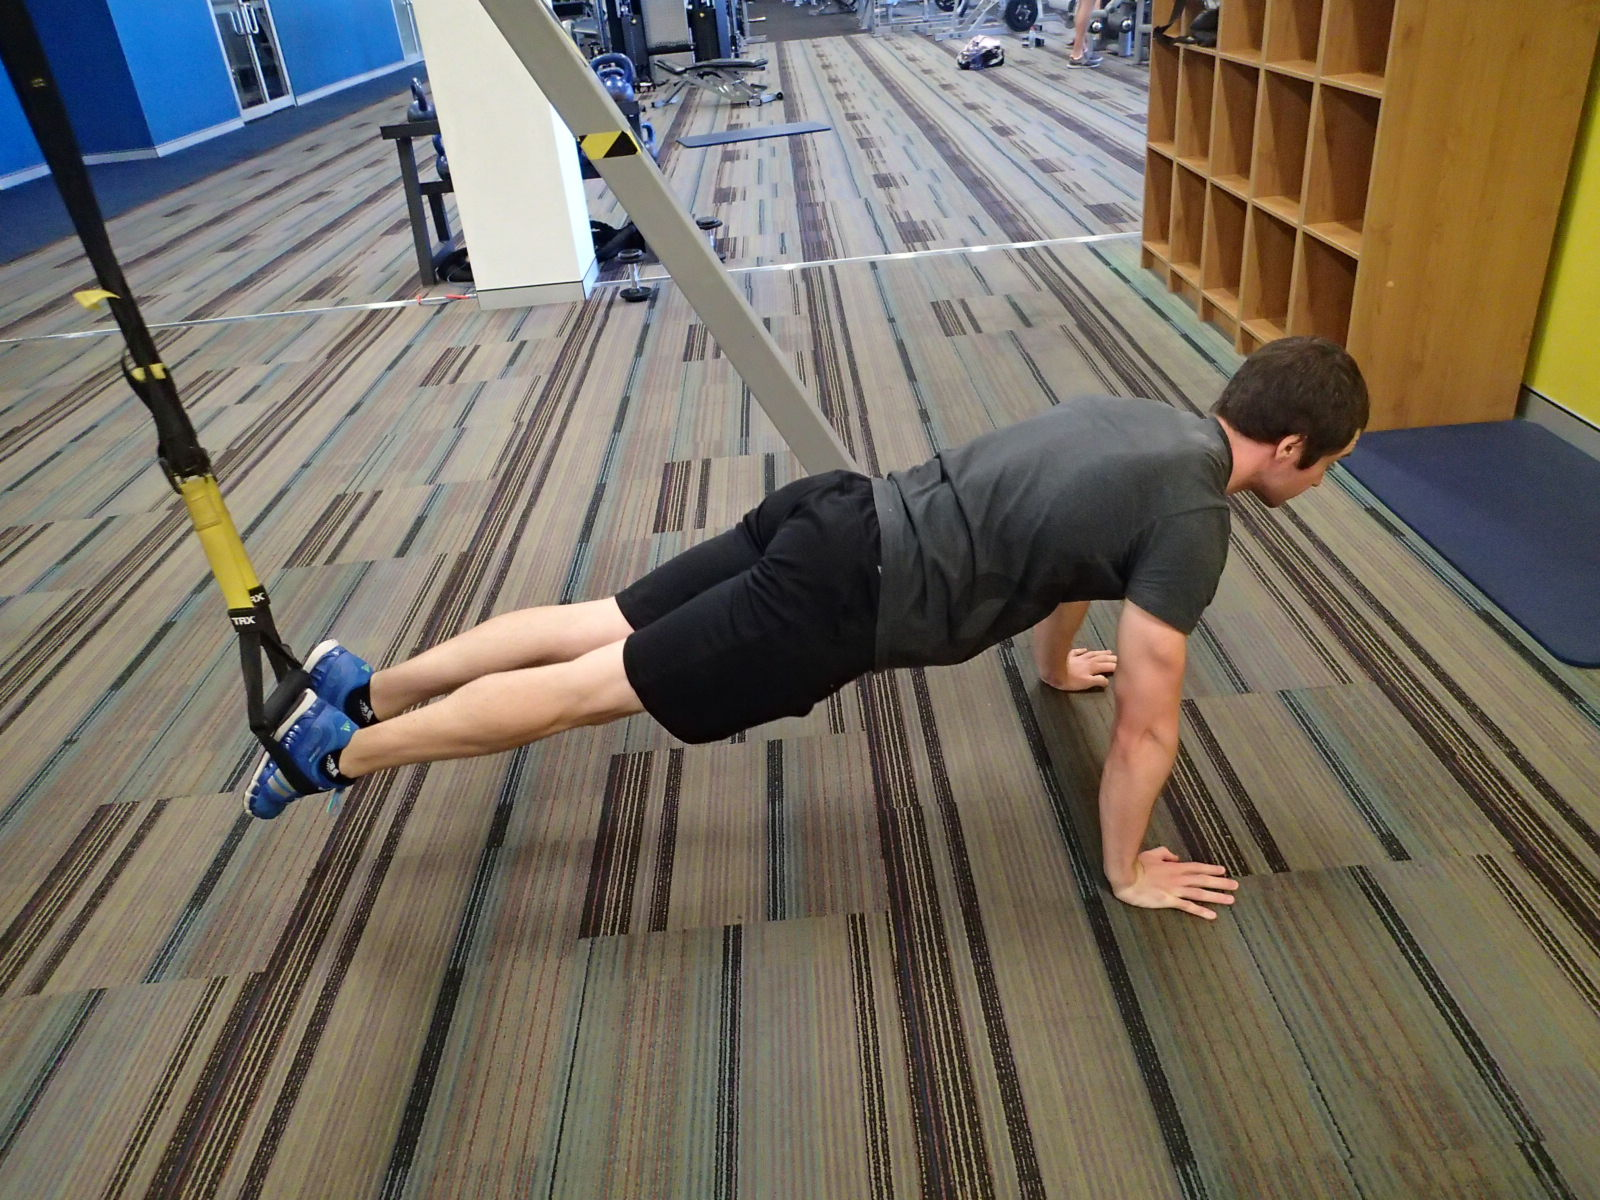 Horizontal Pushing Exercises Michael Hermann Personal